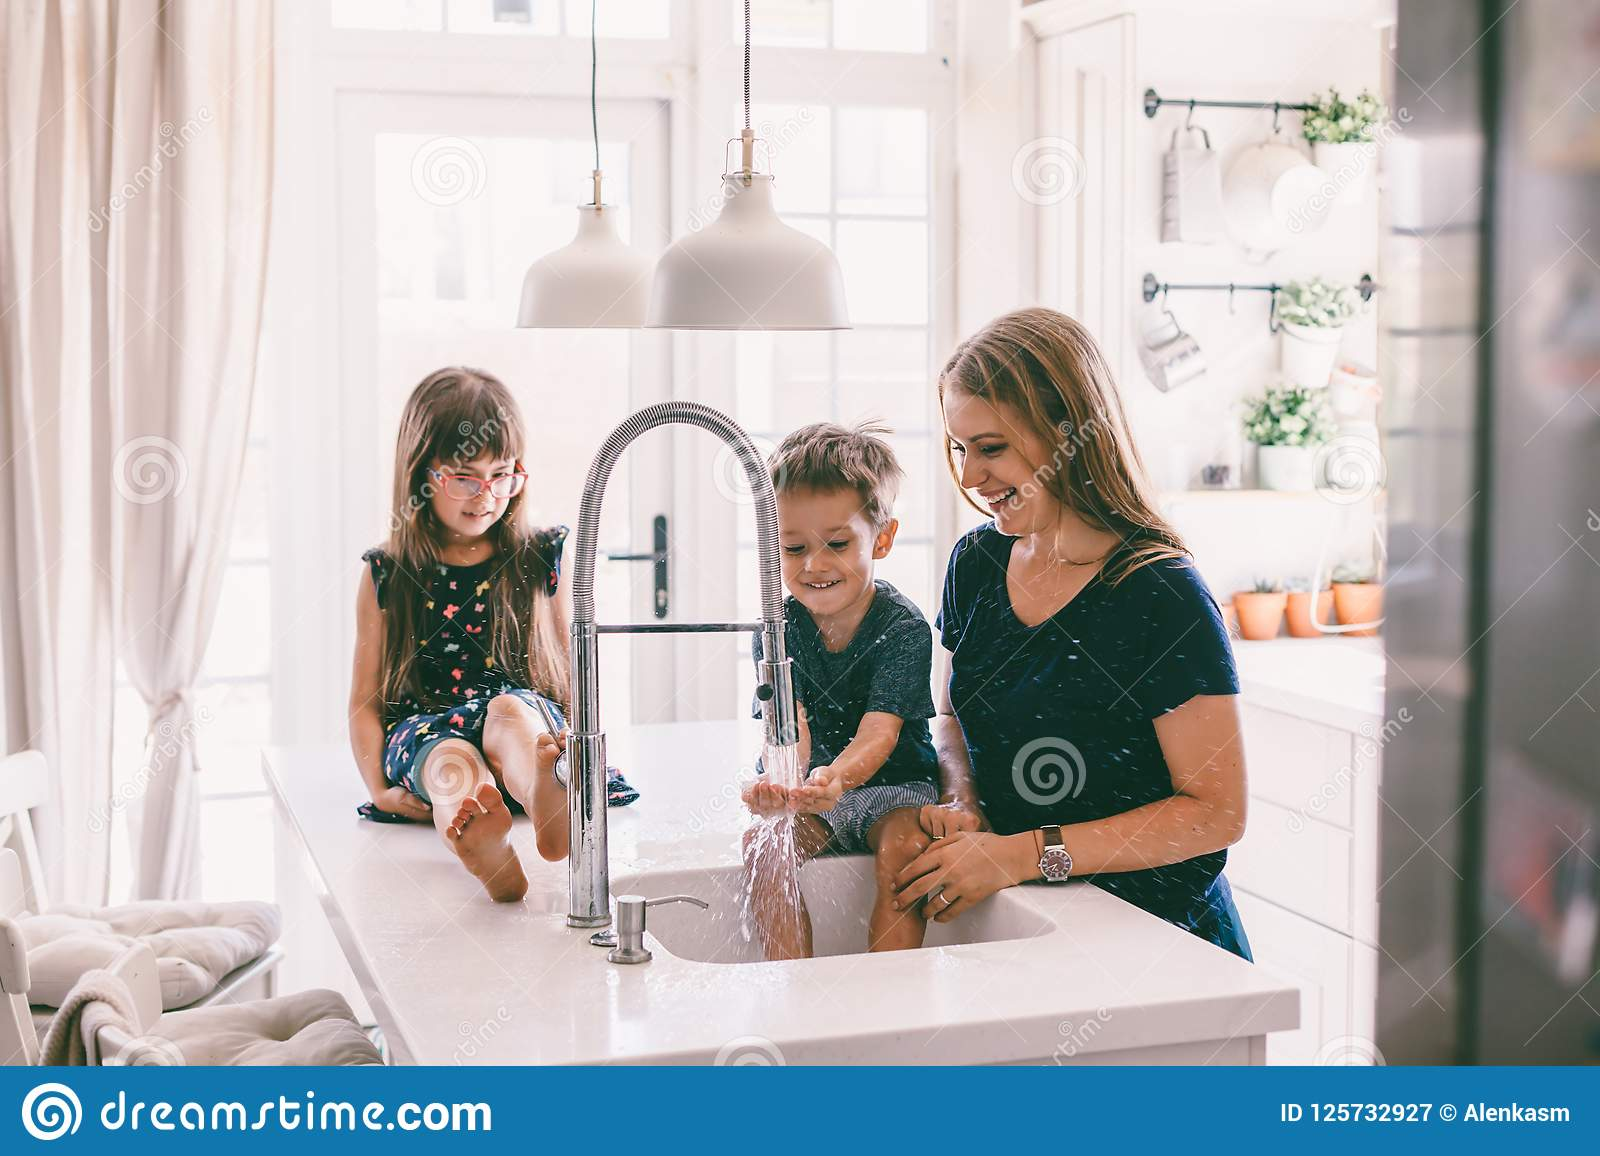 Mother with her children playing in kitchen sink